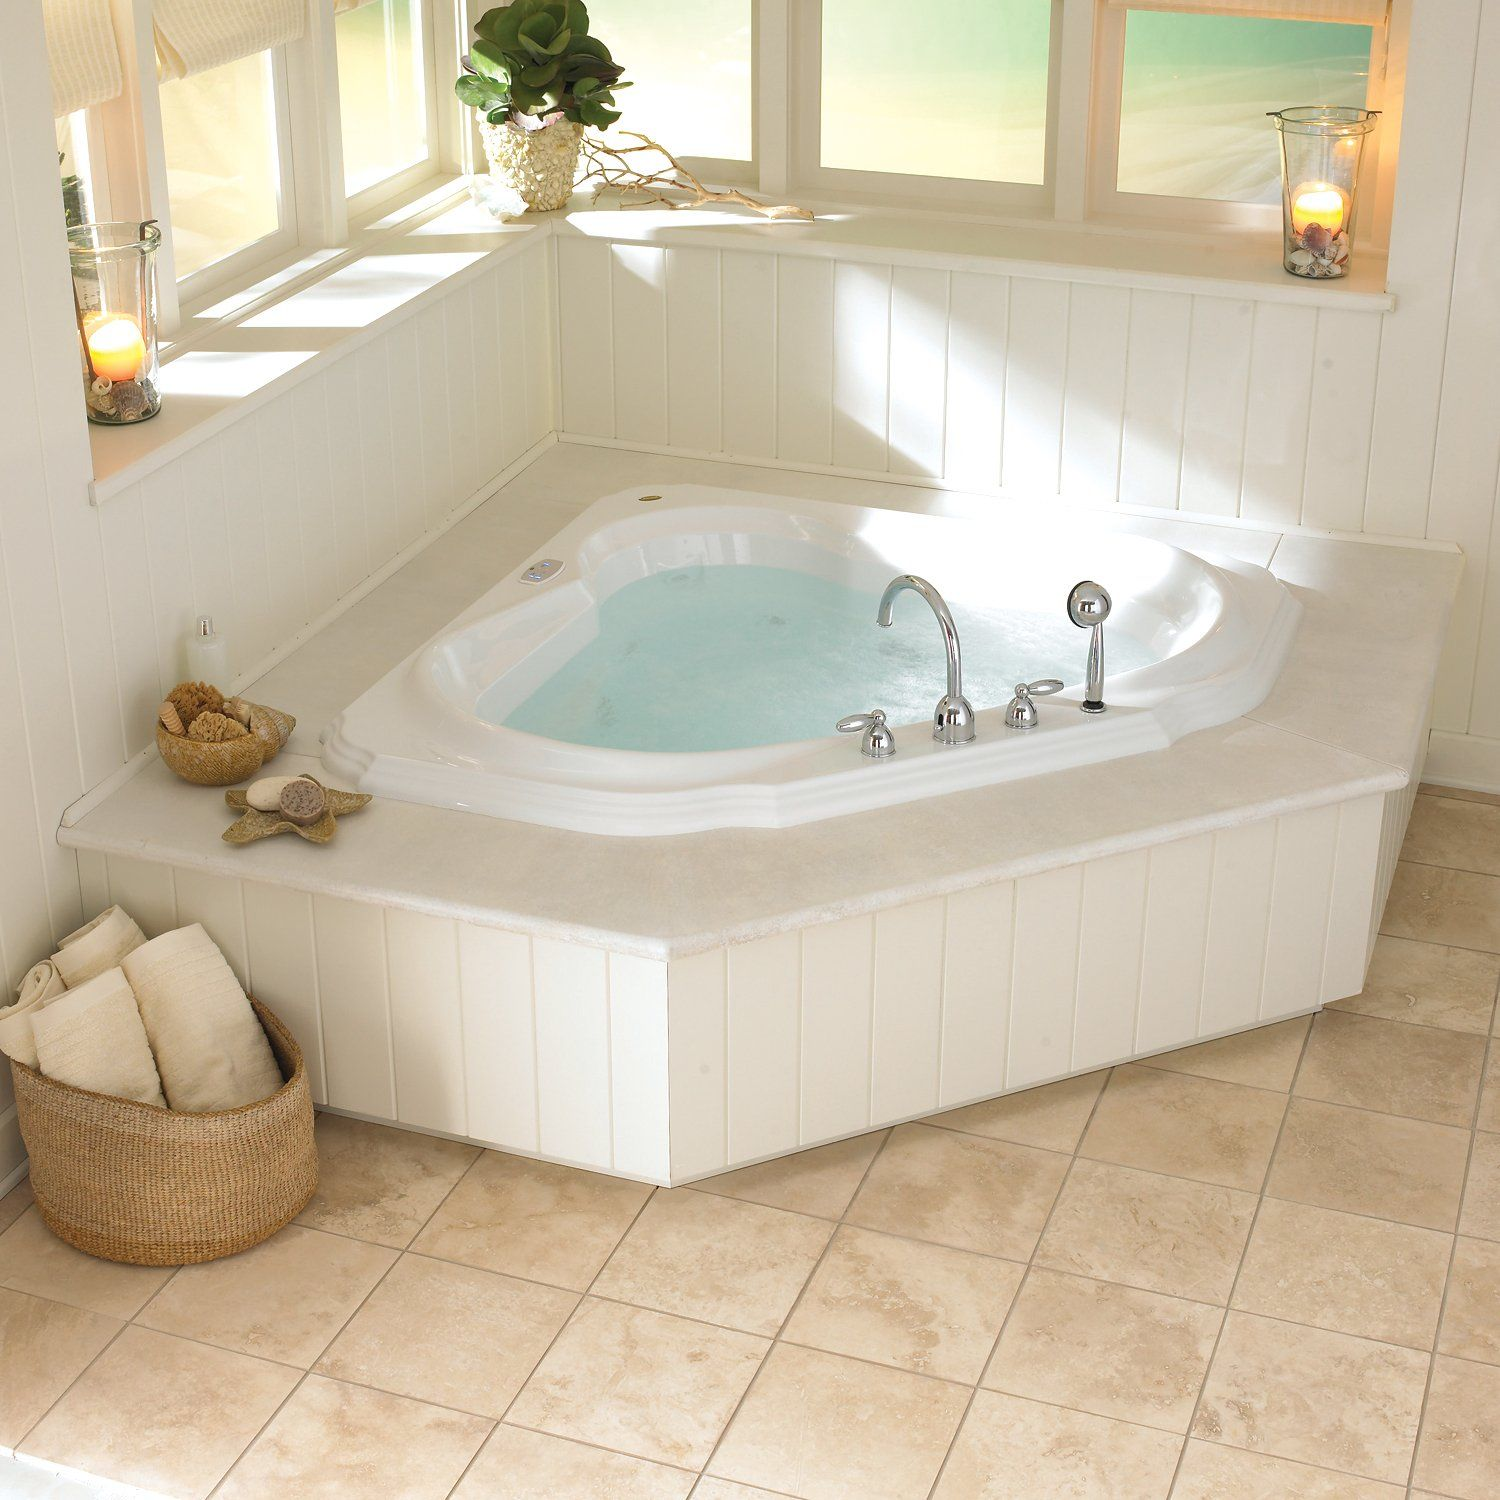 Our corner bathtub models are designed to fit nicely in a 60\